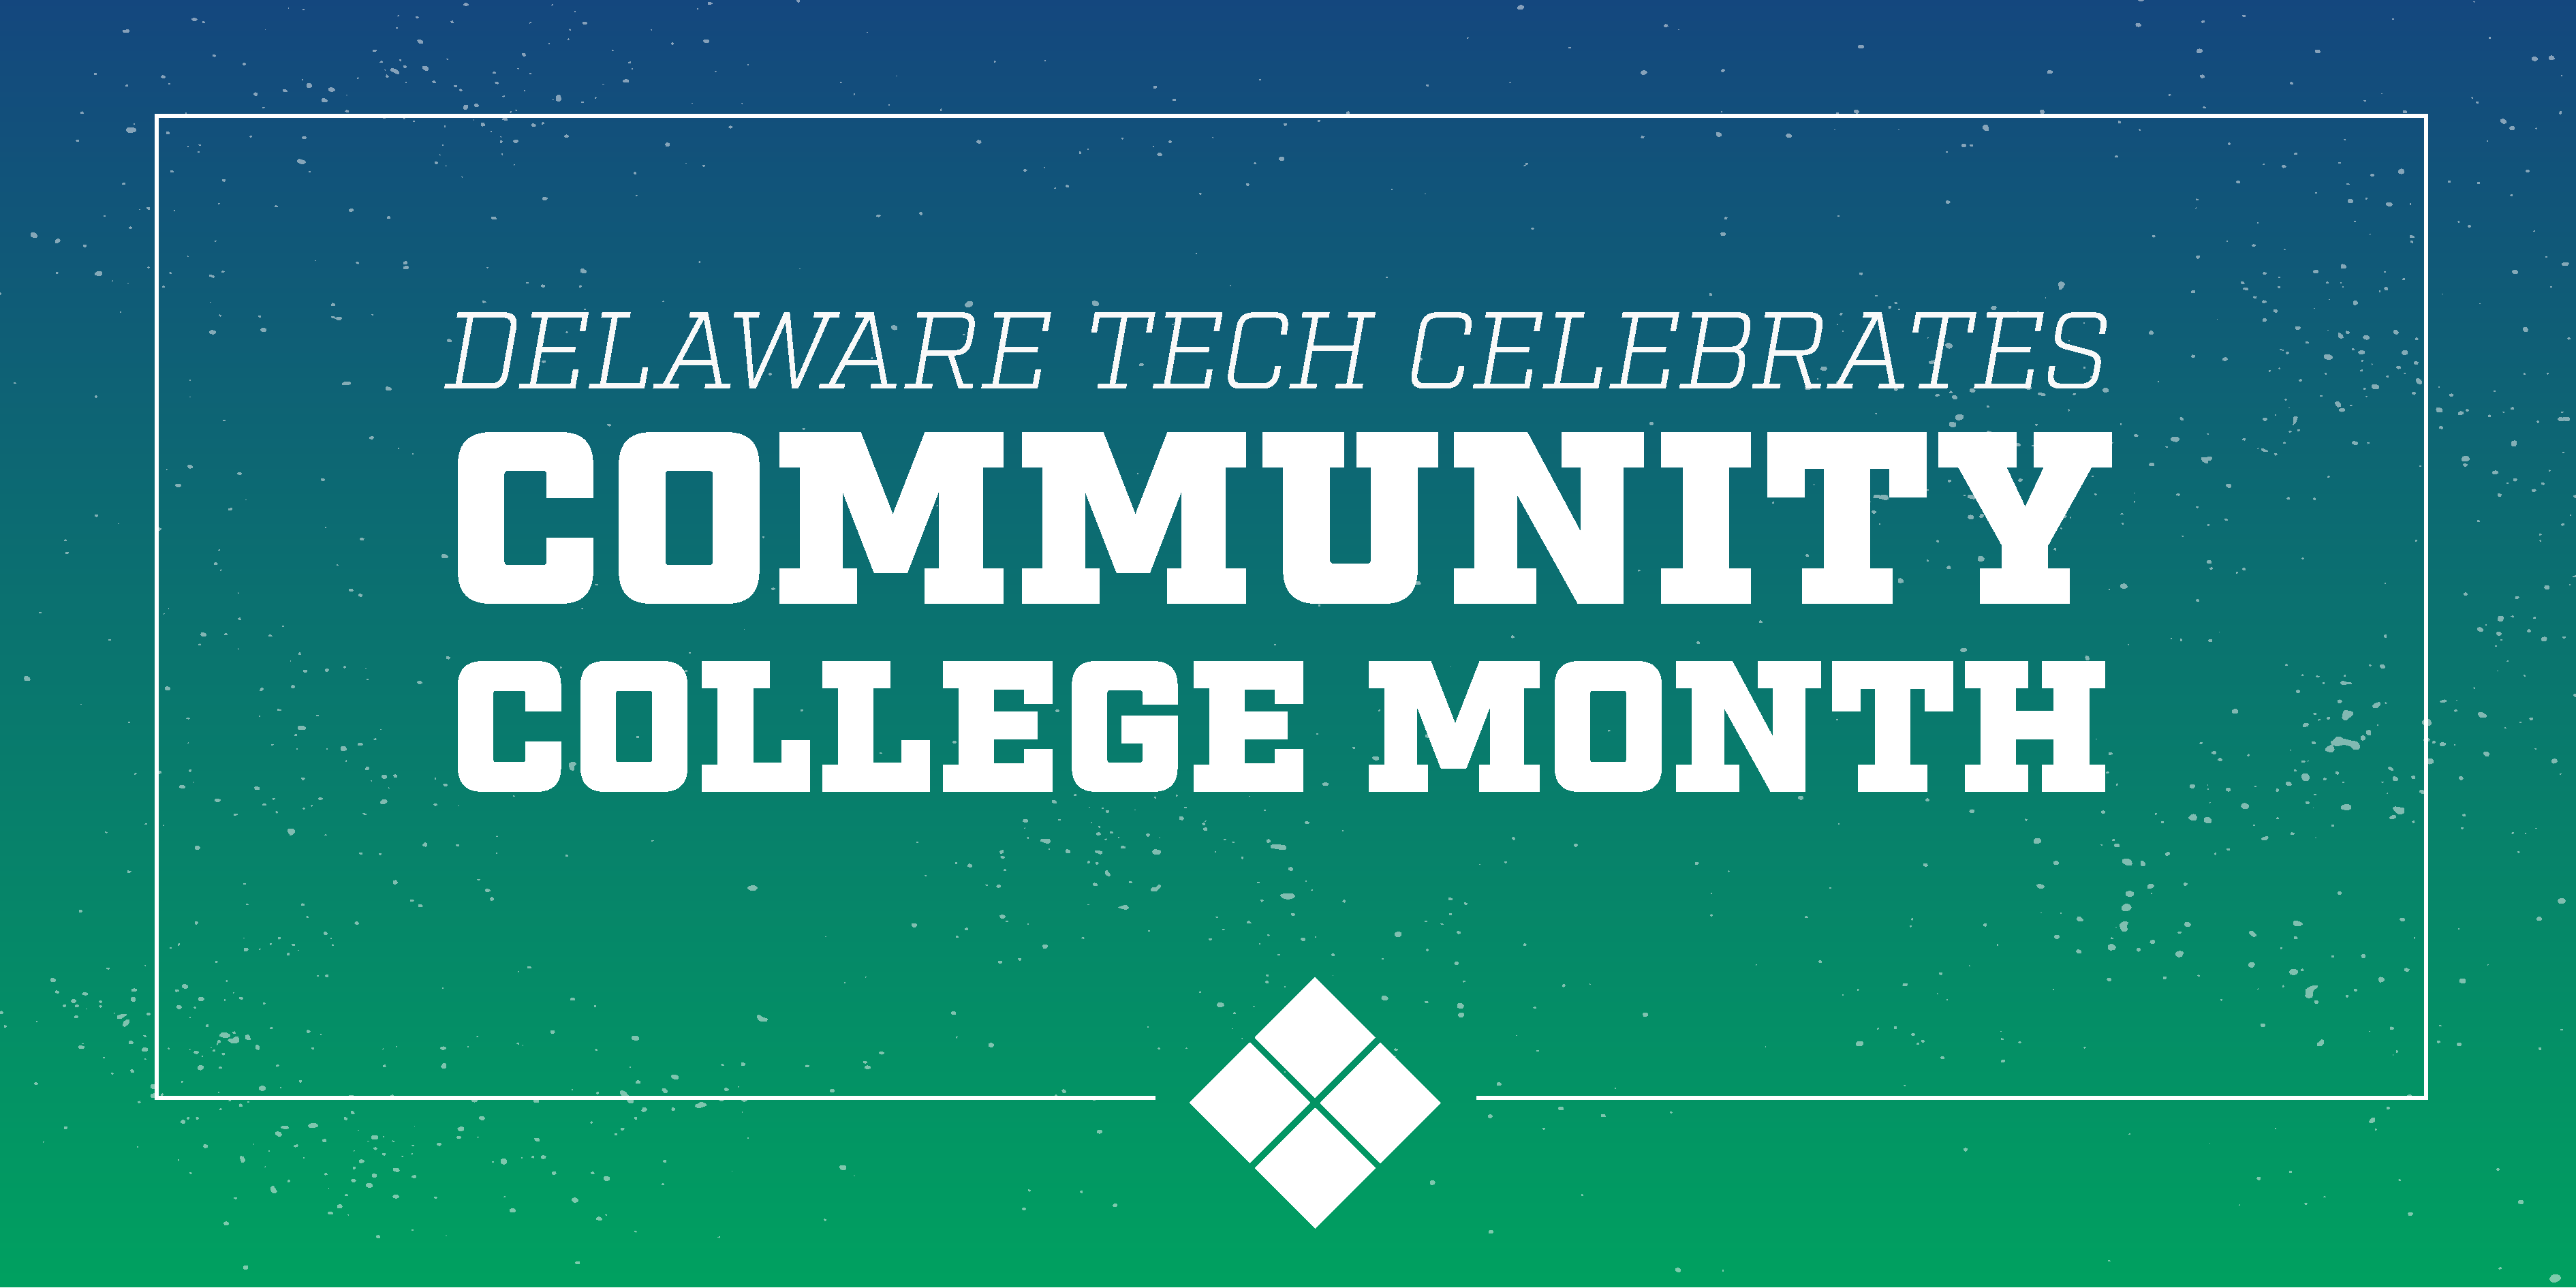 Community College Month Facebook graphic that says Delaware Tech Celebrates Community College Month